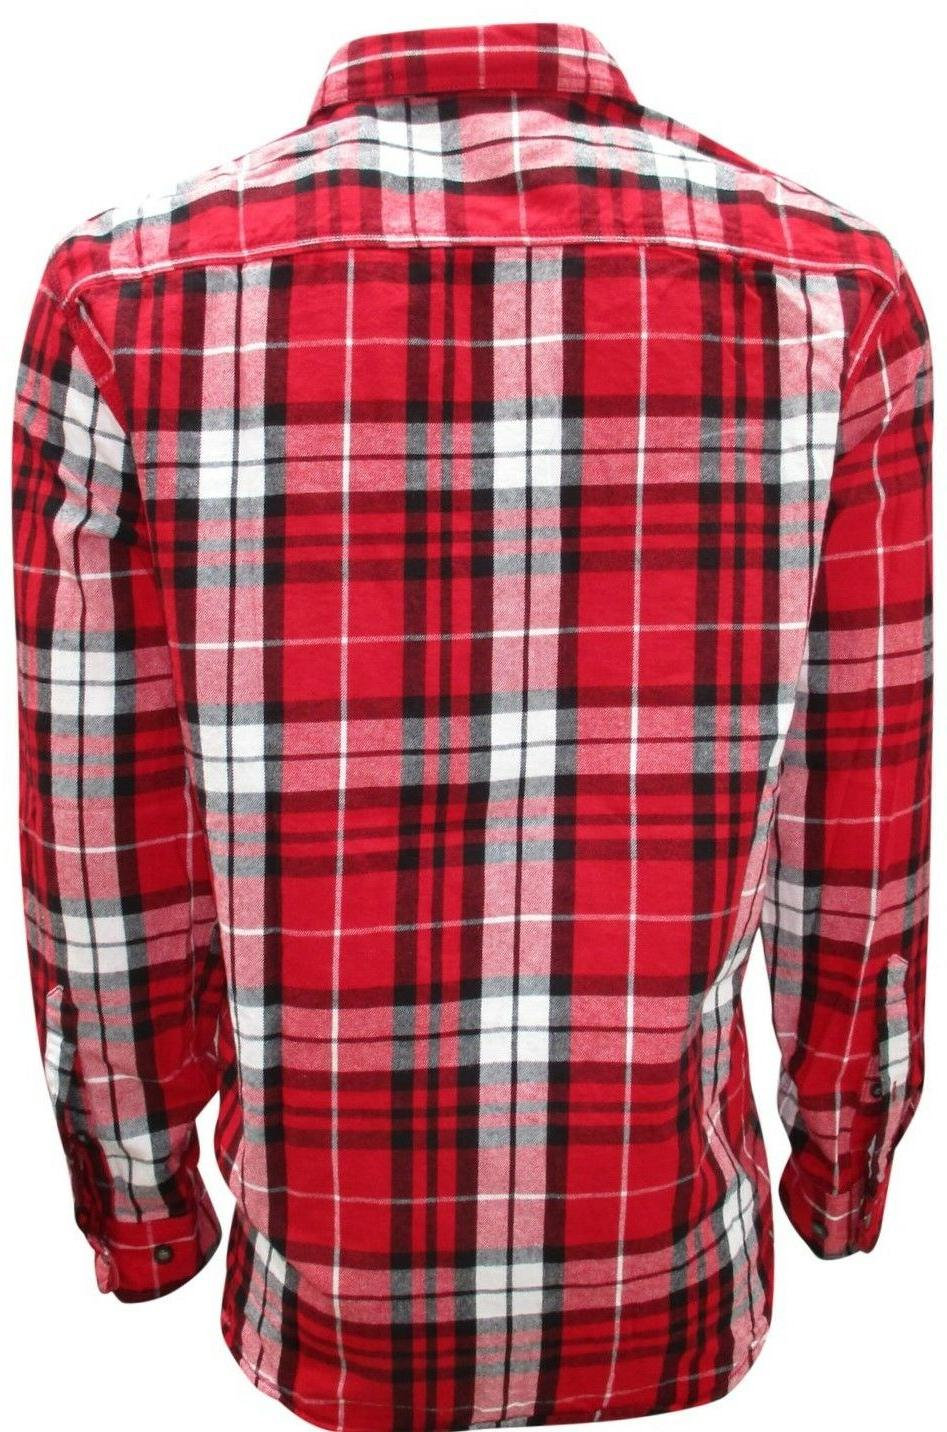 Plaid, for Men, Sleeve Down to 3XL